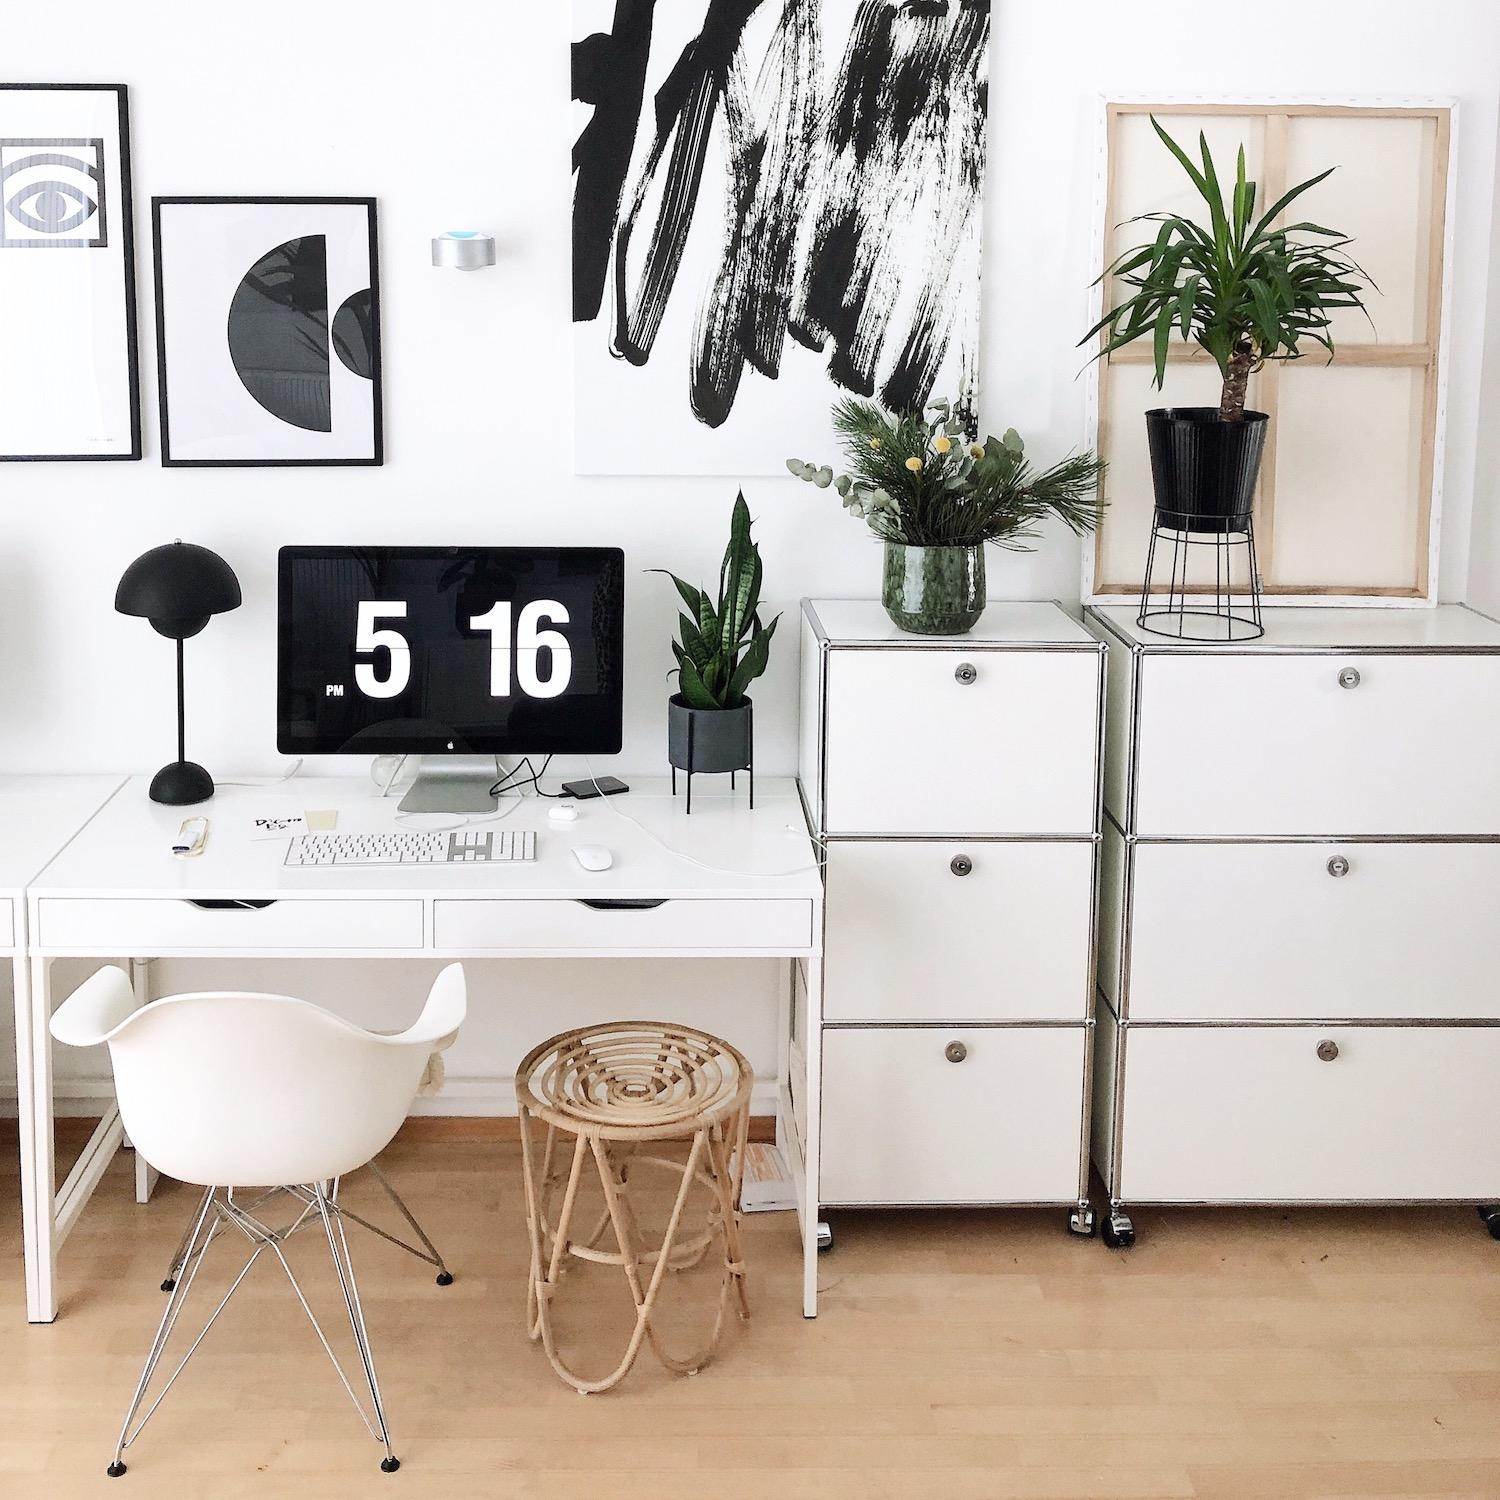 Working Space Schwarz Weiss #homeoffice #workspace #officevibes #monochrom #inspiration #schwarzweiss #wanddeko